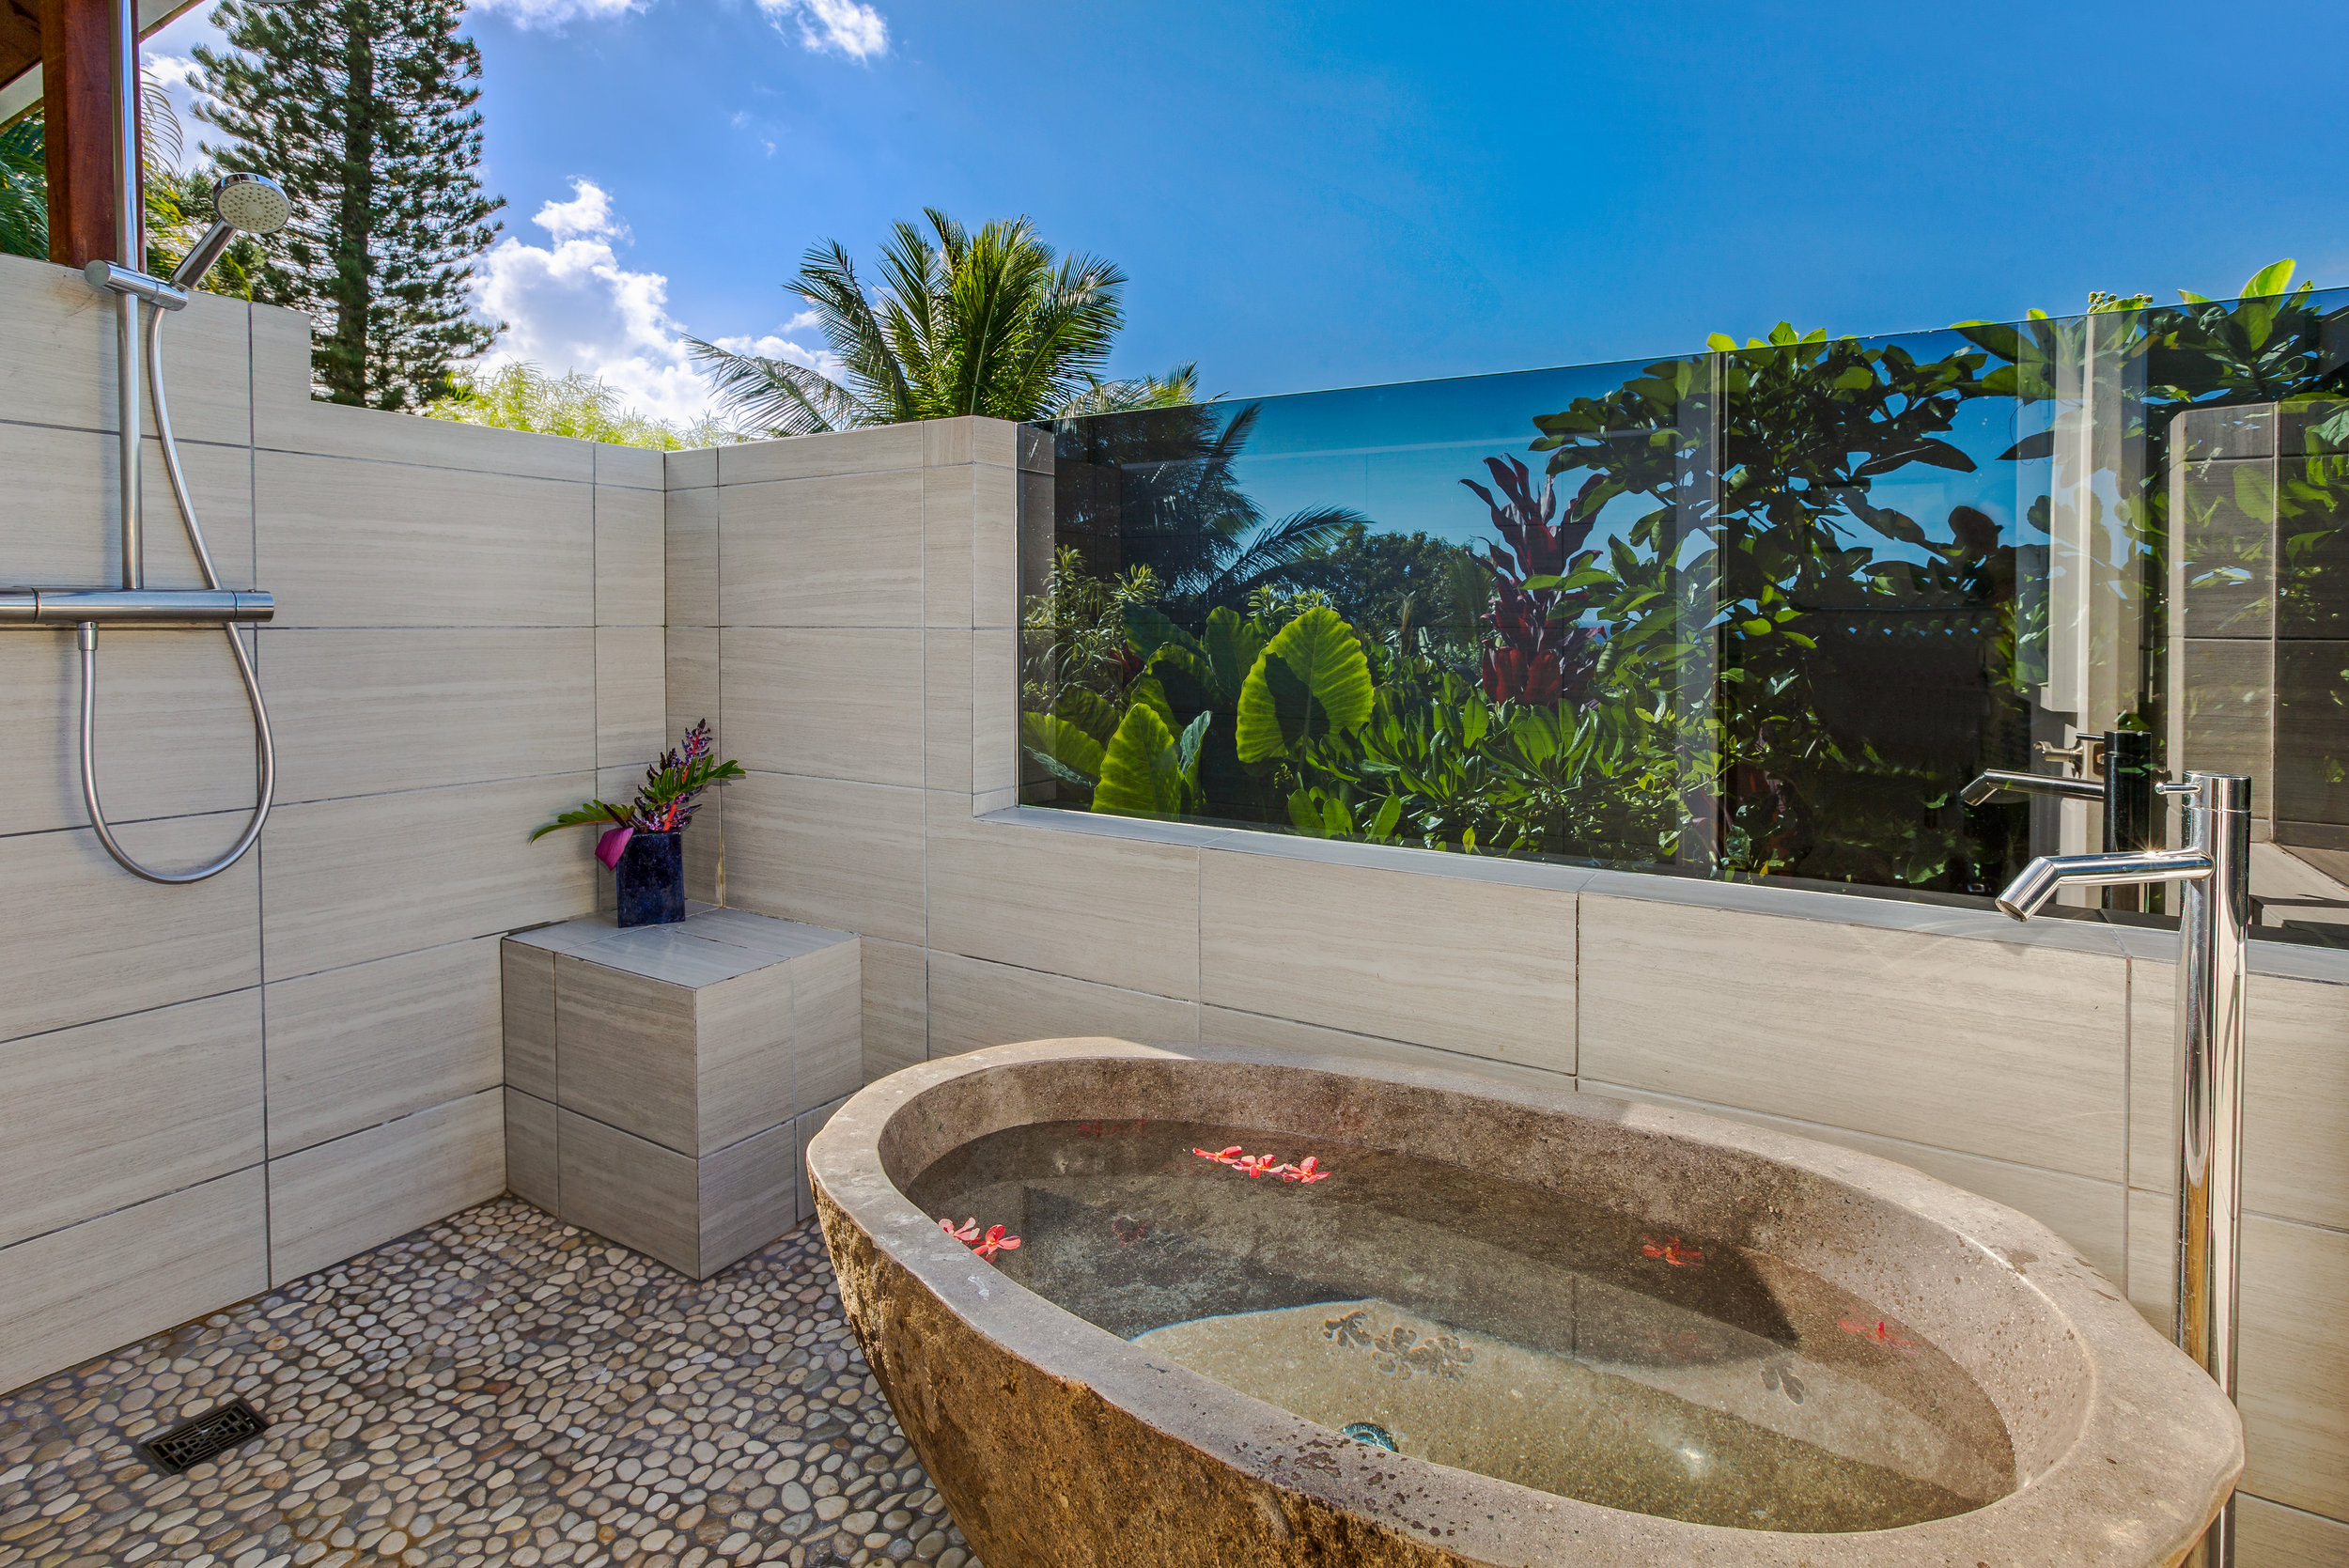 West Master ensuite bathroom outdoor area features stainless steel rain shower and Balinese stone soaker tub, both with ocean views.